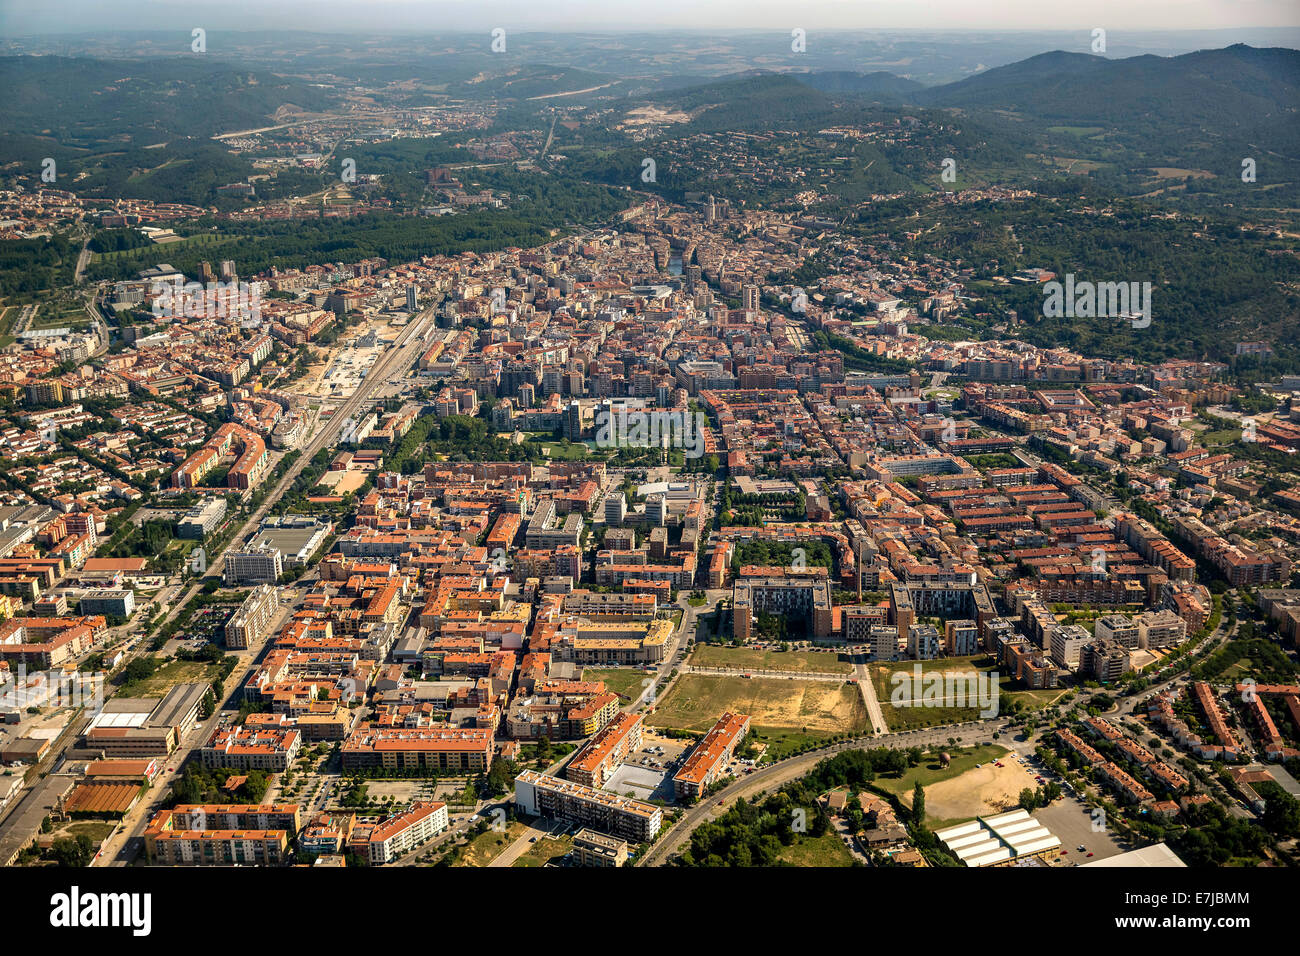 Aerial view, overview of the old town, Girona, Catalonia, Spain Stock Photo